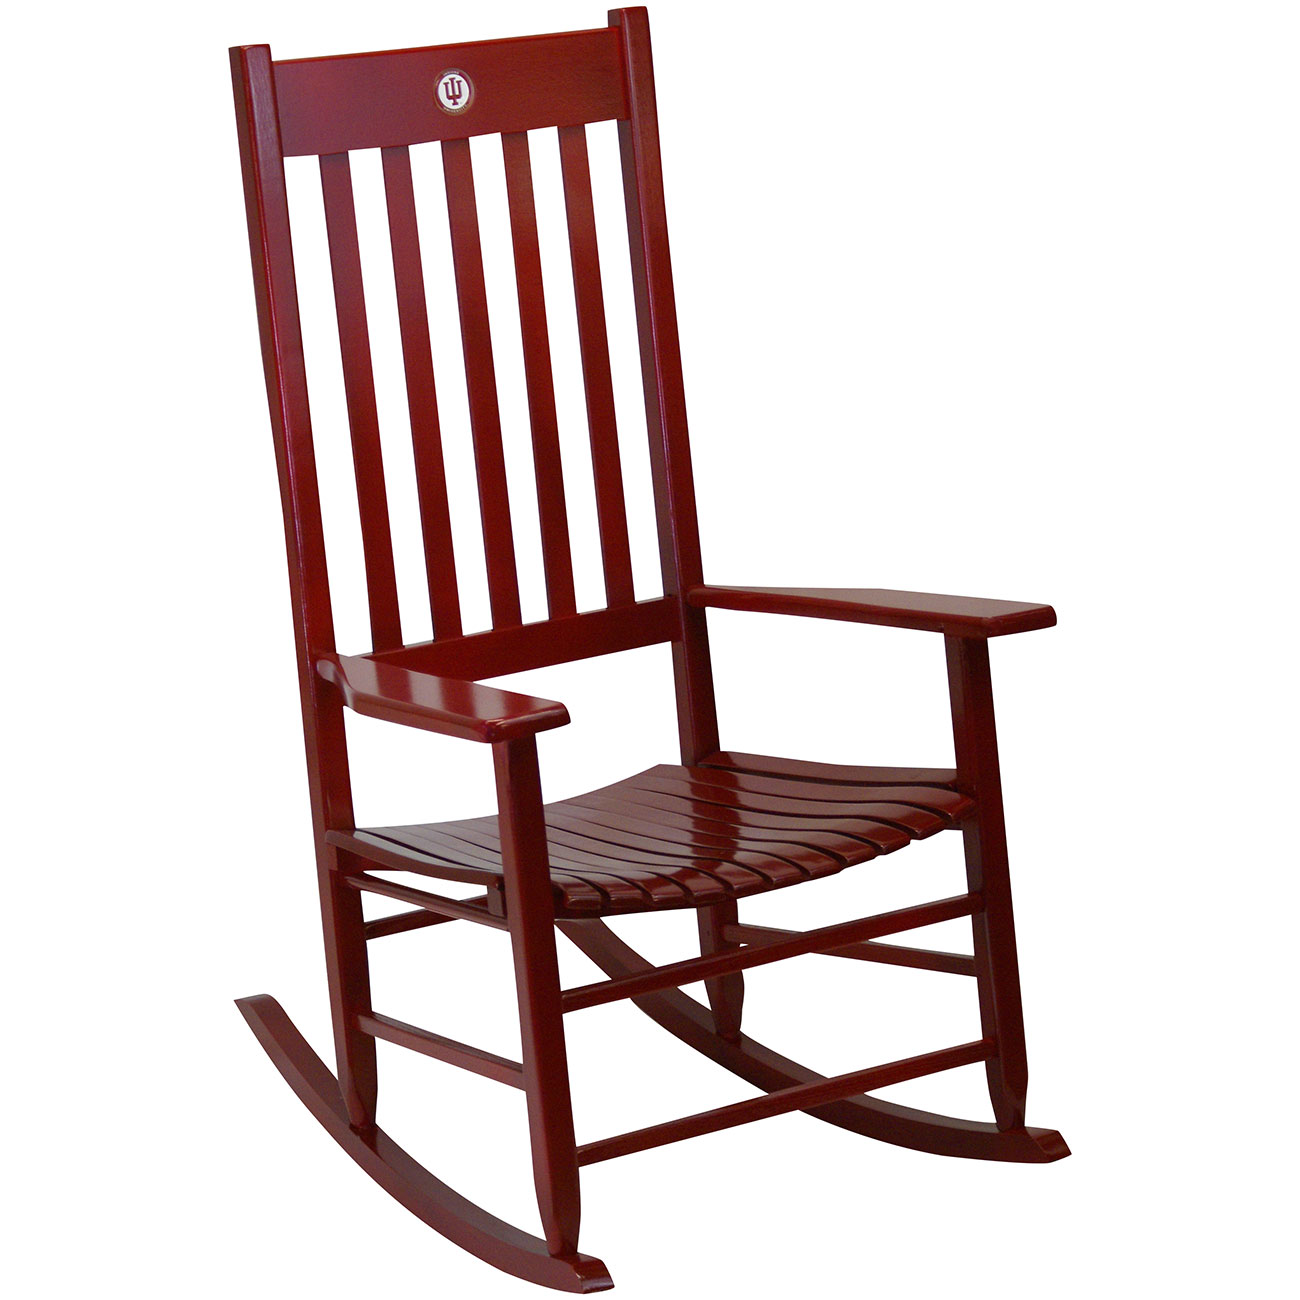 Remarkable Team Color Rocking Chair Indiana Andrewgaddart Wooden Chair Designs For Living Room Andrewgaddartcom